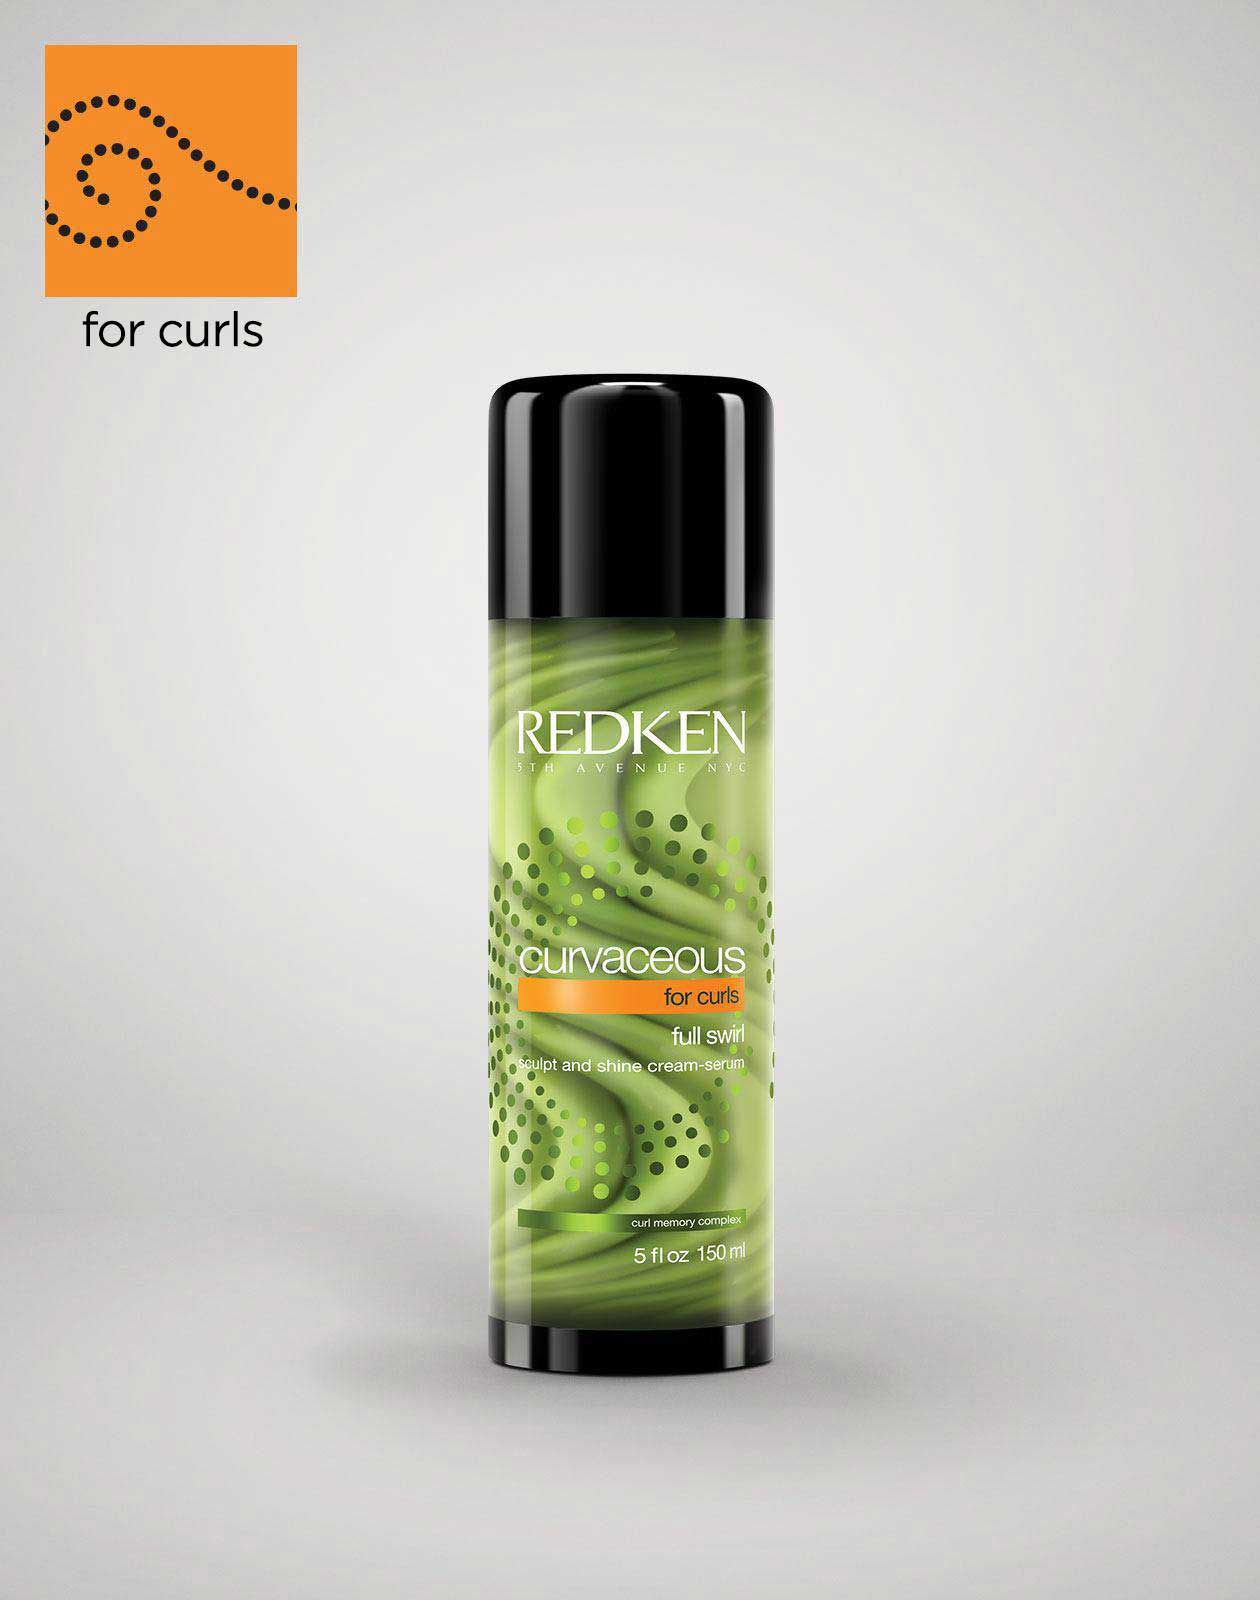 Curvaceous CCC Layering Curl Spray-Gel for perfect curls ... | 1260 x 1600 jpeg 58kB